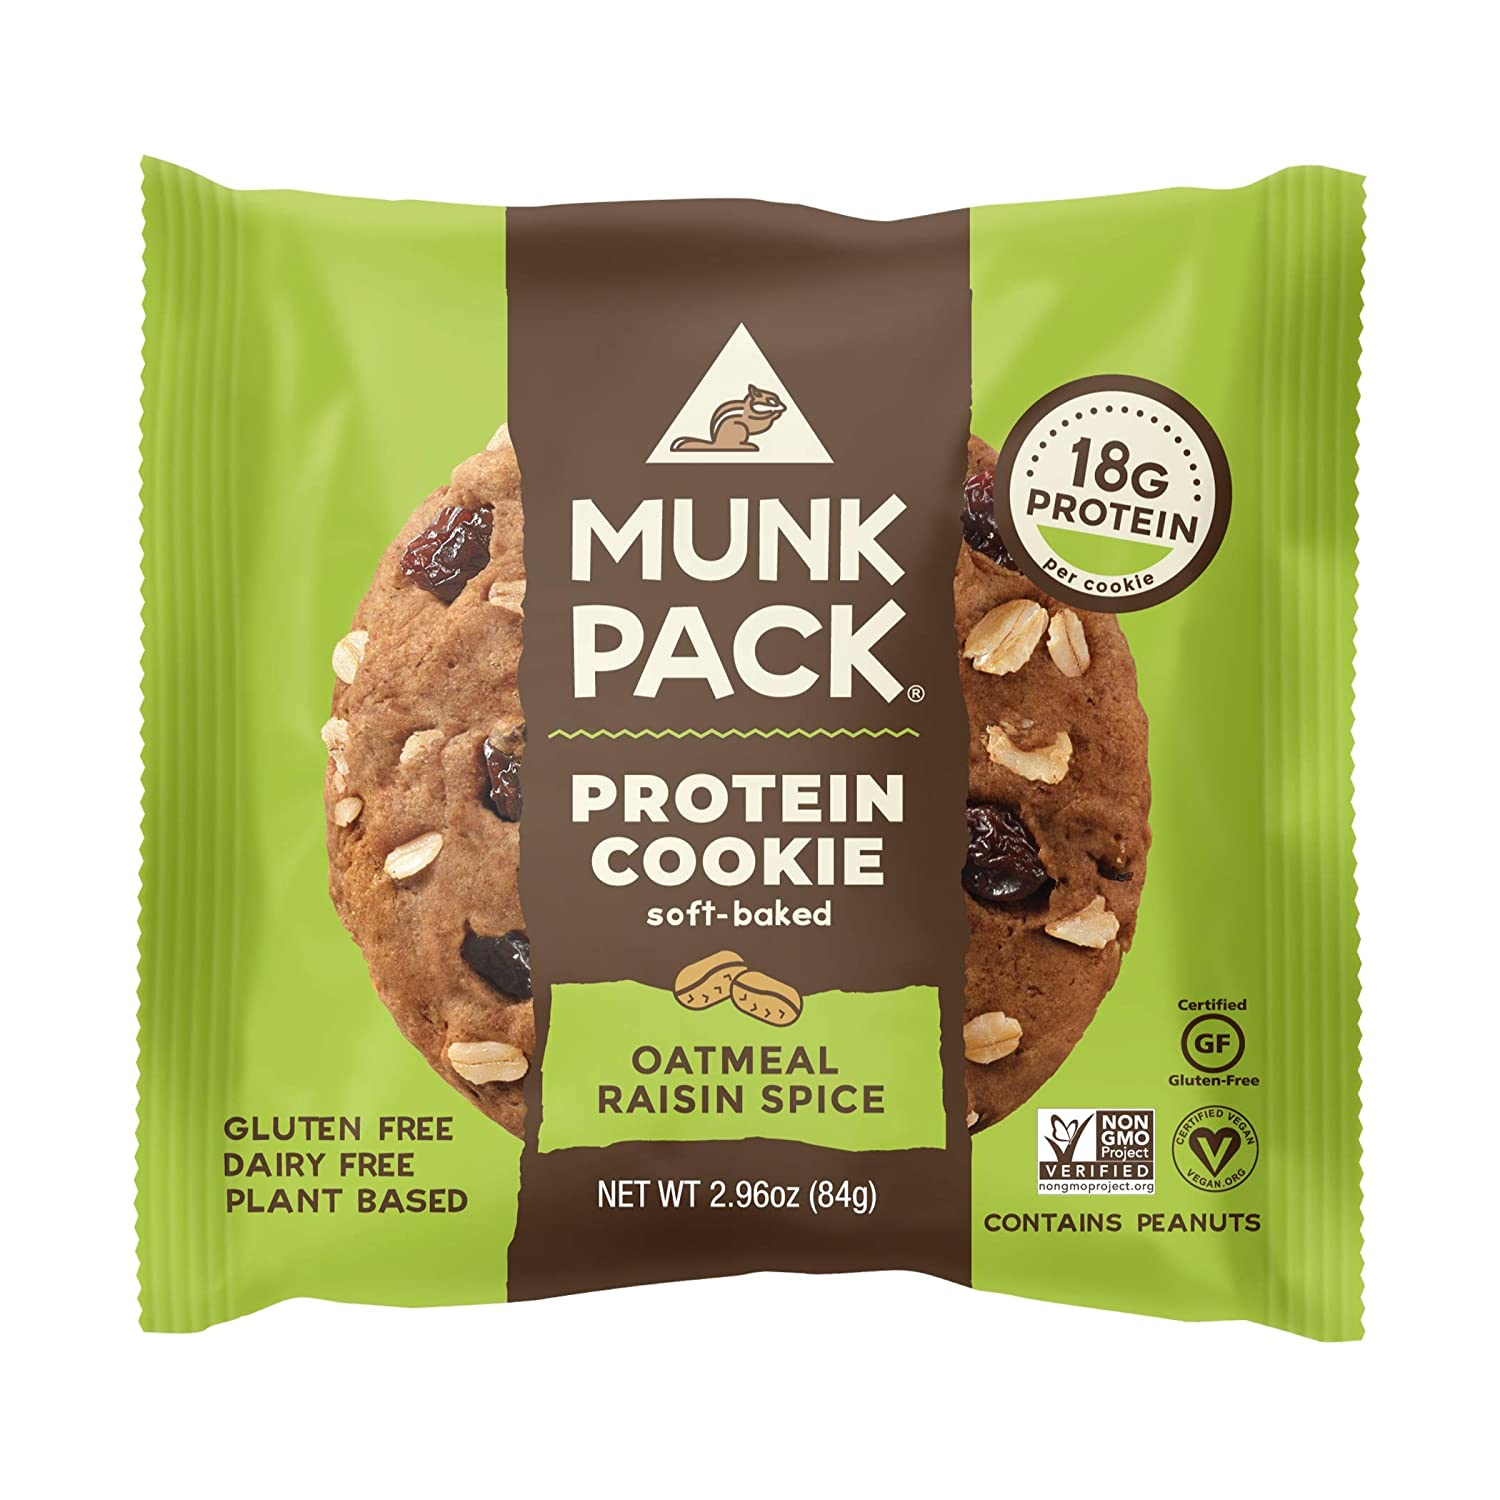 Munk Pack Oatmeal Raisin Spice Protein Cookie with 18 Grams of Protein | Soft Baked | Vegan | Gluten, Dairy and Soy Free | 12 Pack